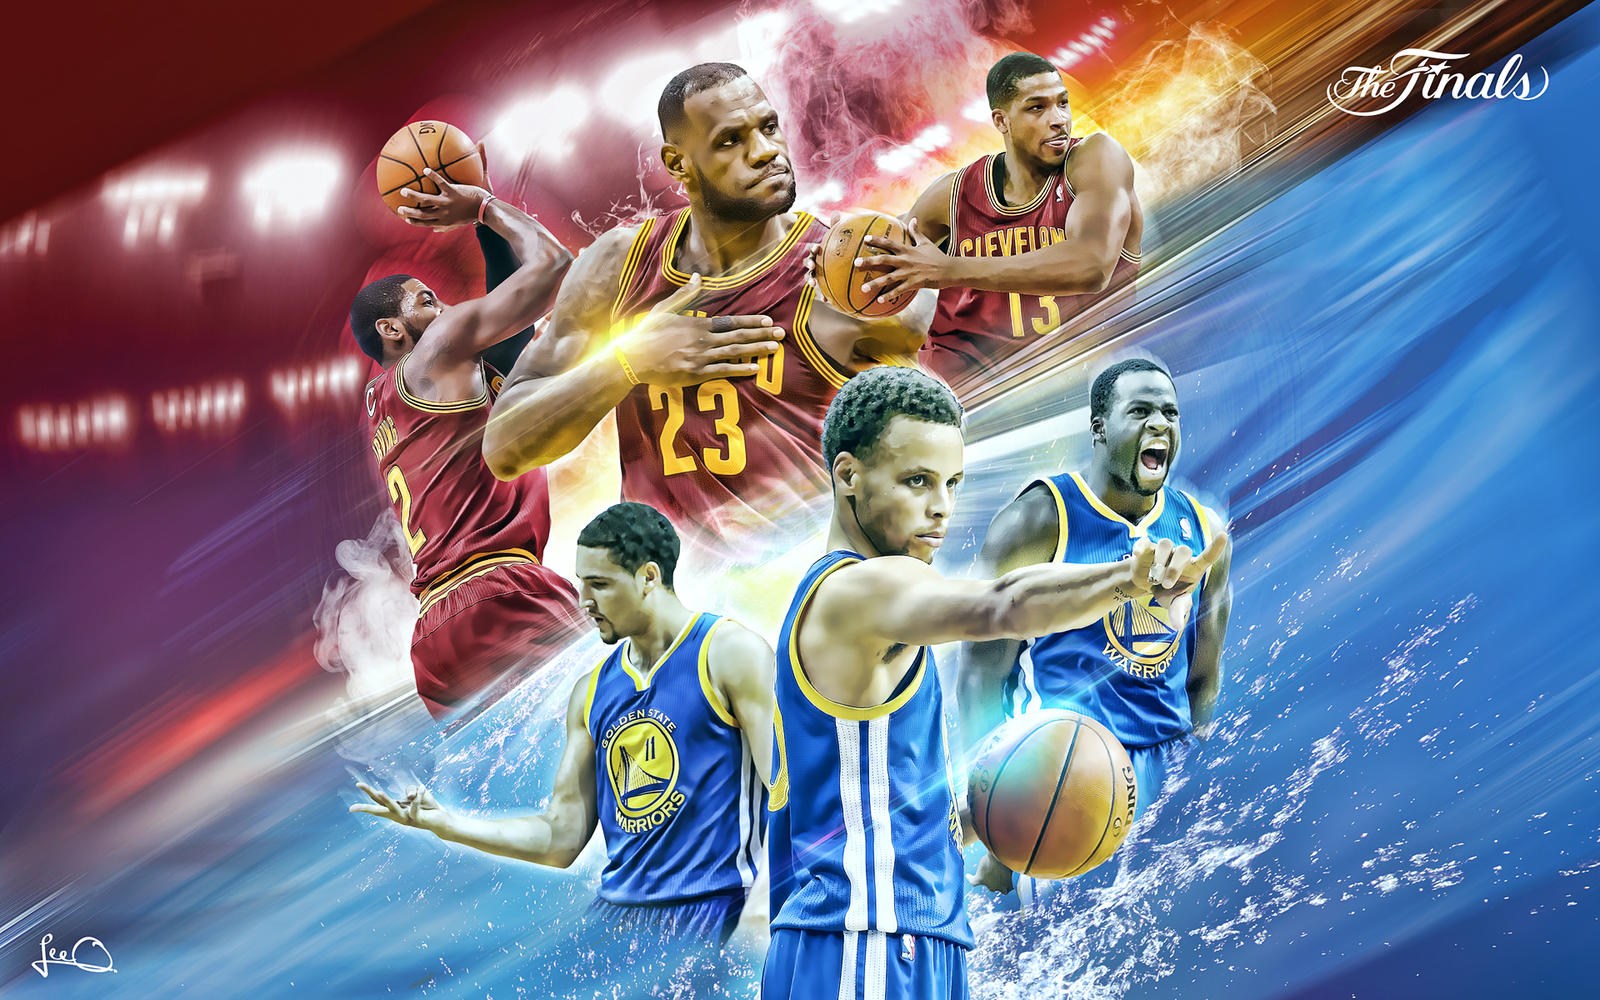 NBA Finals 2015 Wallpaper by skythlee on DeviantArt